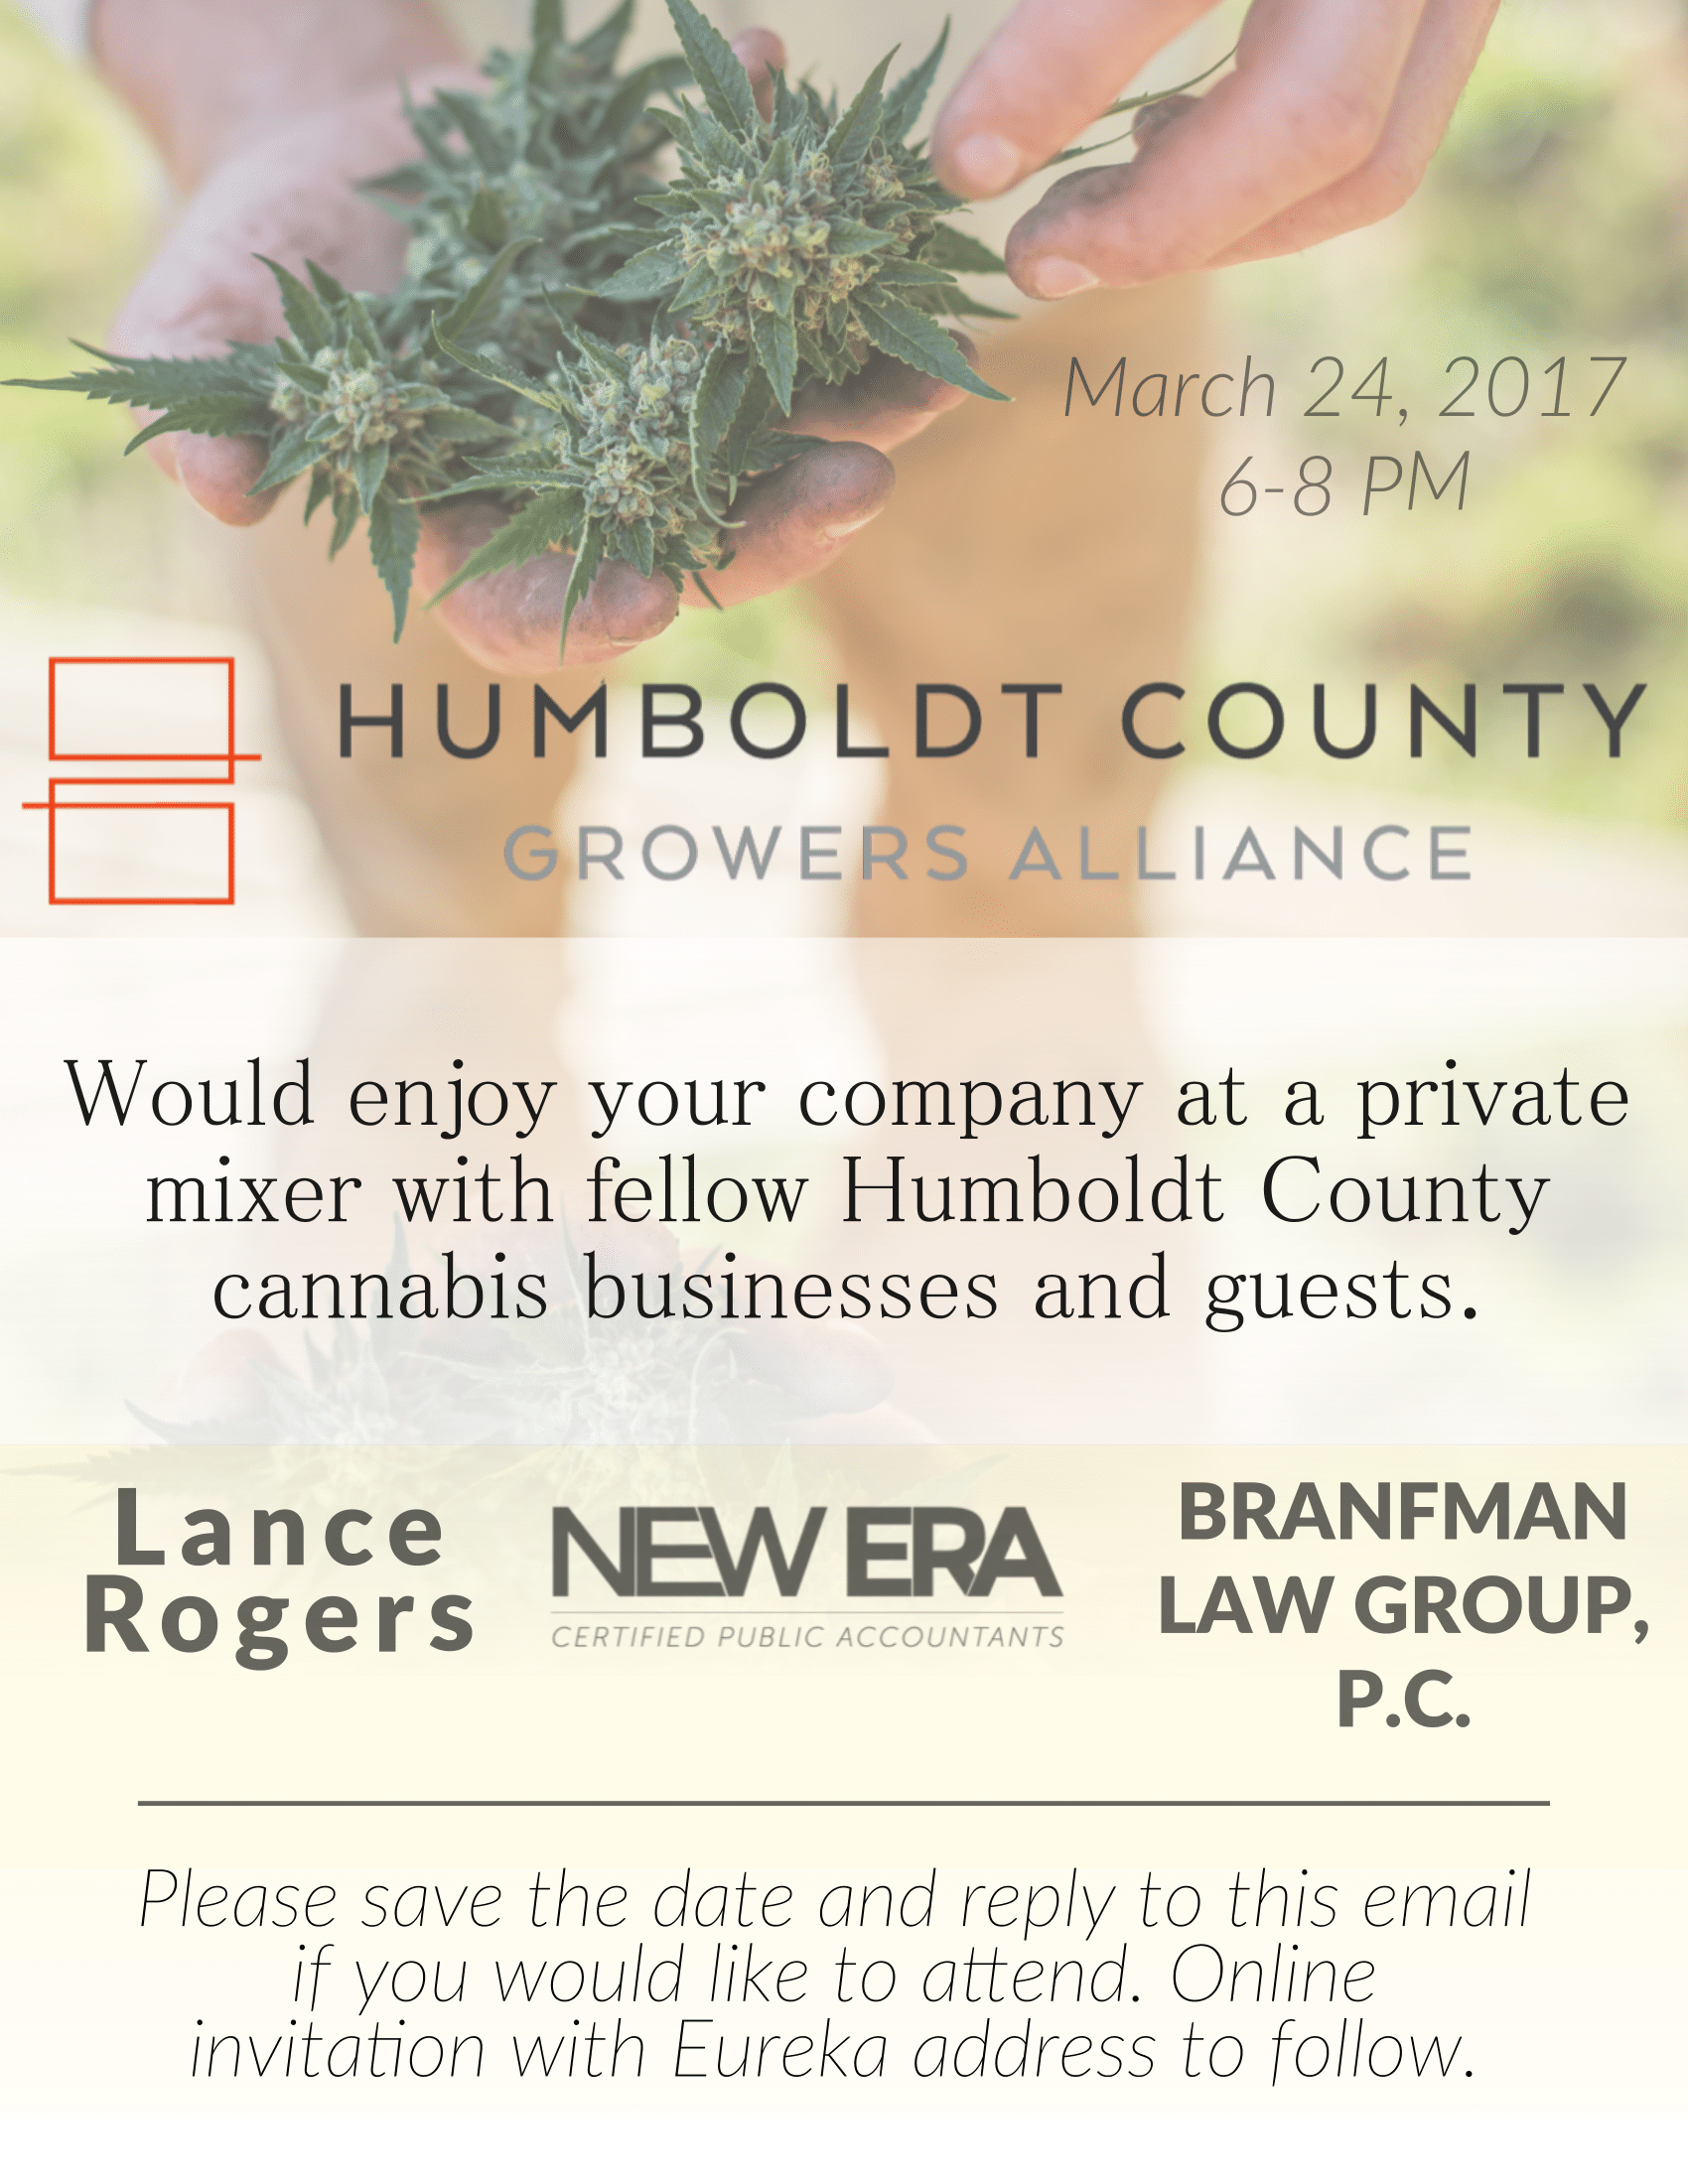 Humboldt County Growers Alliance